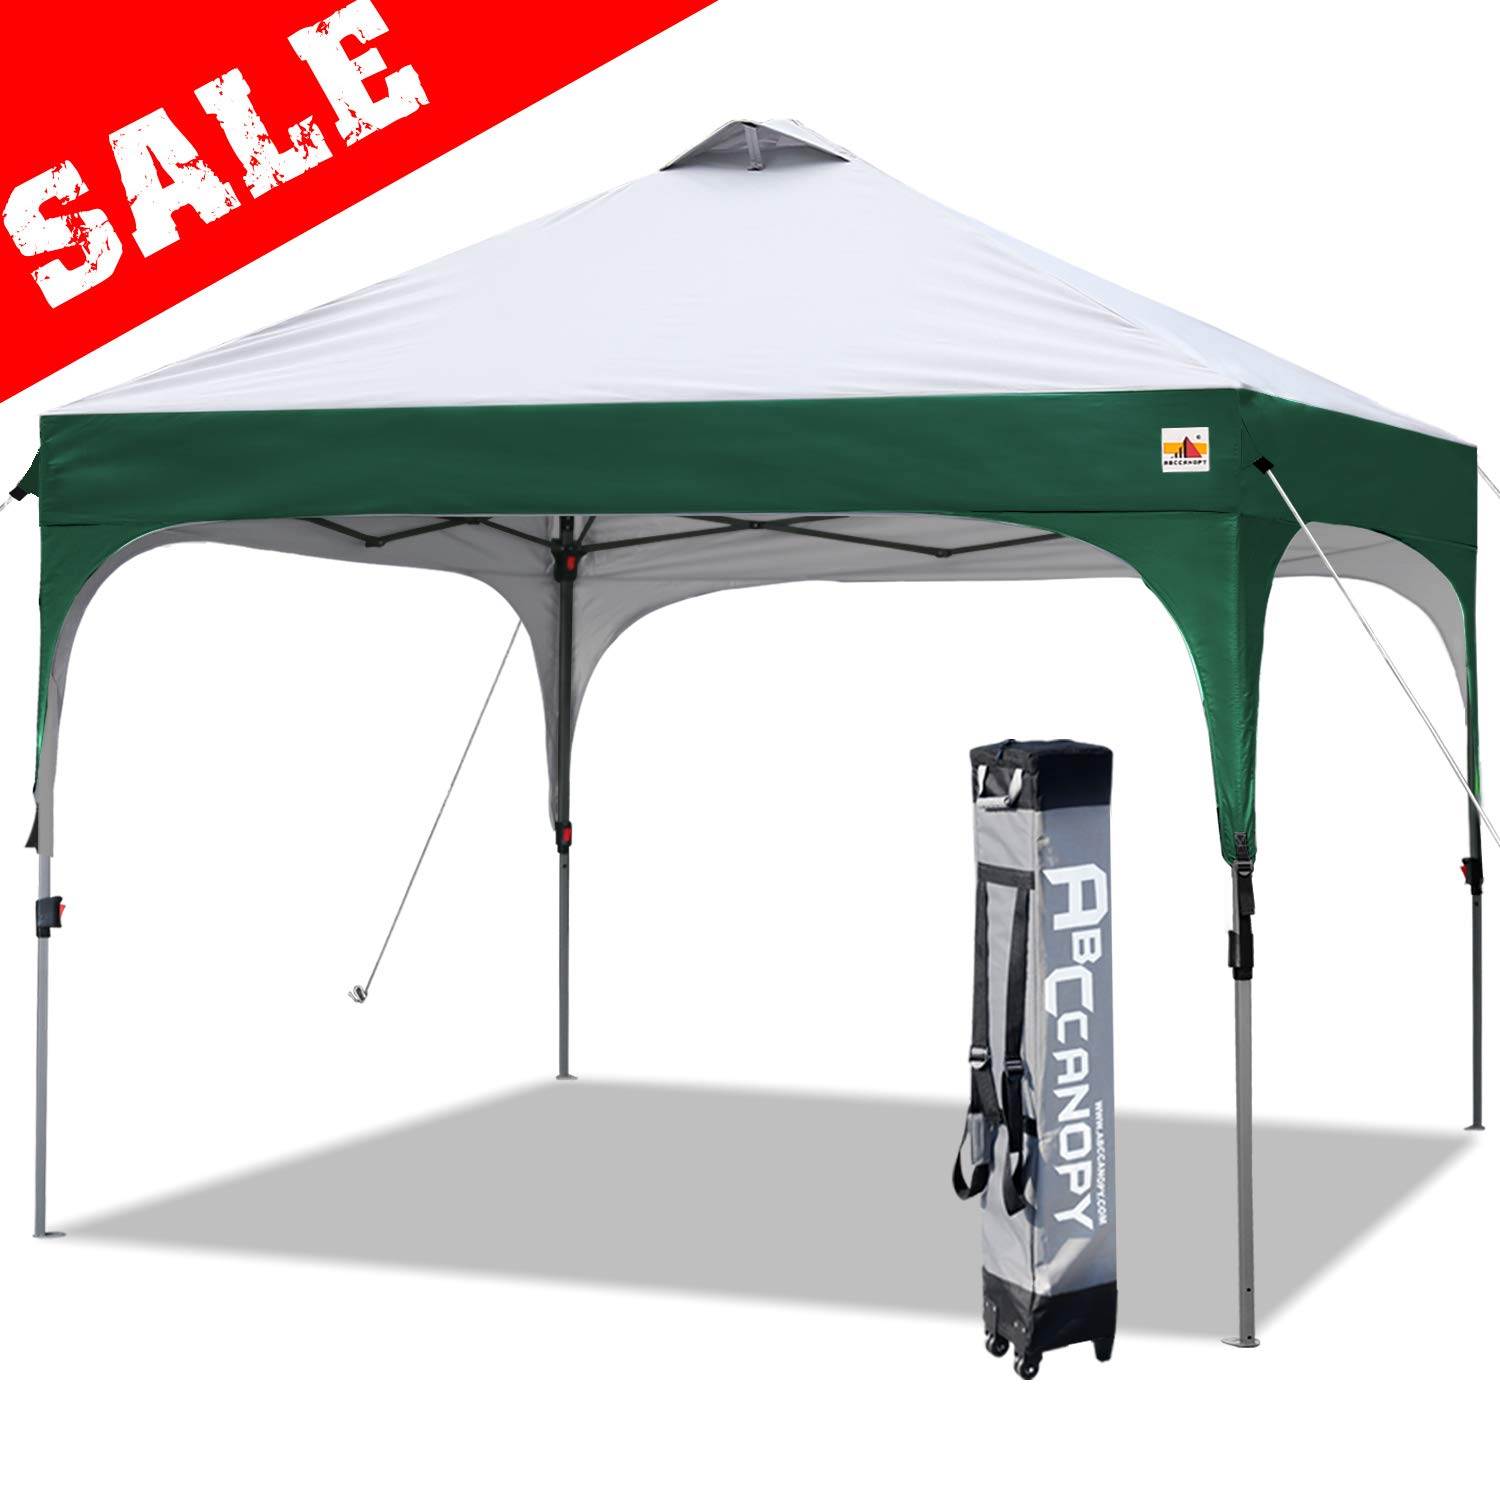 ABCCANOPY Pop Up Canopy Tent Commercial Canopy 10u0027 x 10u0027 Better Air Circulation Canopy Tents with Wheeled Carry Bag+4 x Sandbags 4 x Ropesu0026 4 x Stakes ...  sc 1 st  Amazon.com & Amazon.com : ABCCANOPY Pop Up Canopy Tent Commercial Canopy 10u0027 x 10 ...